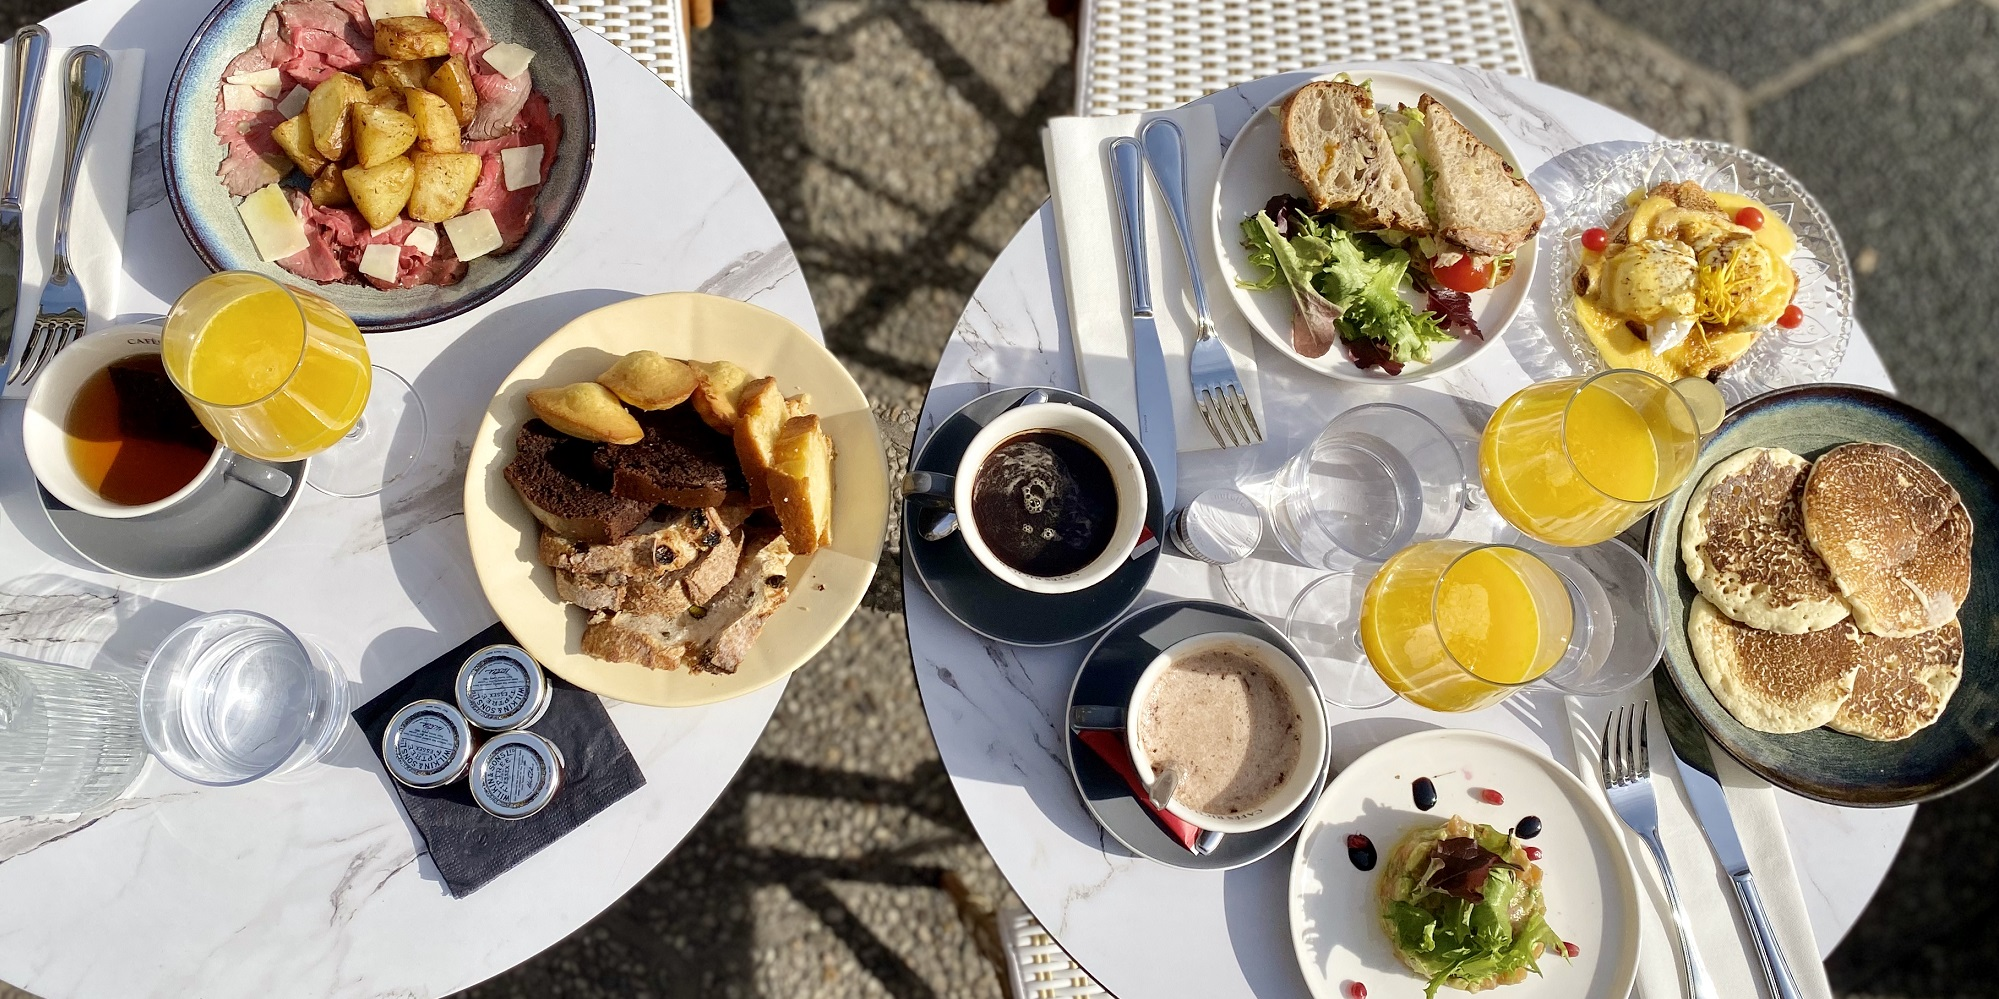 Brunch La villa massenet (06000 Nice)